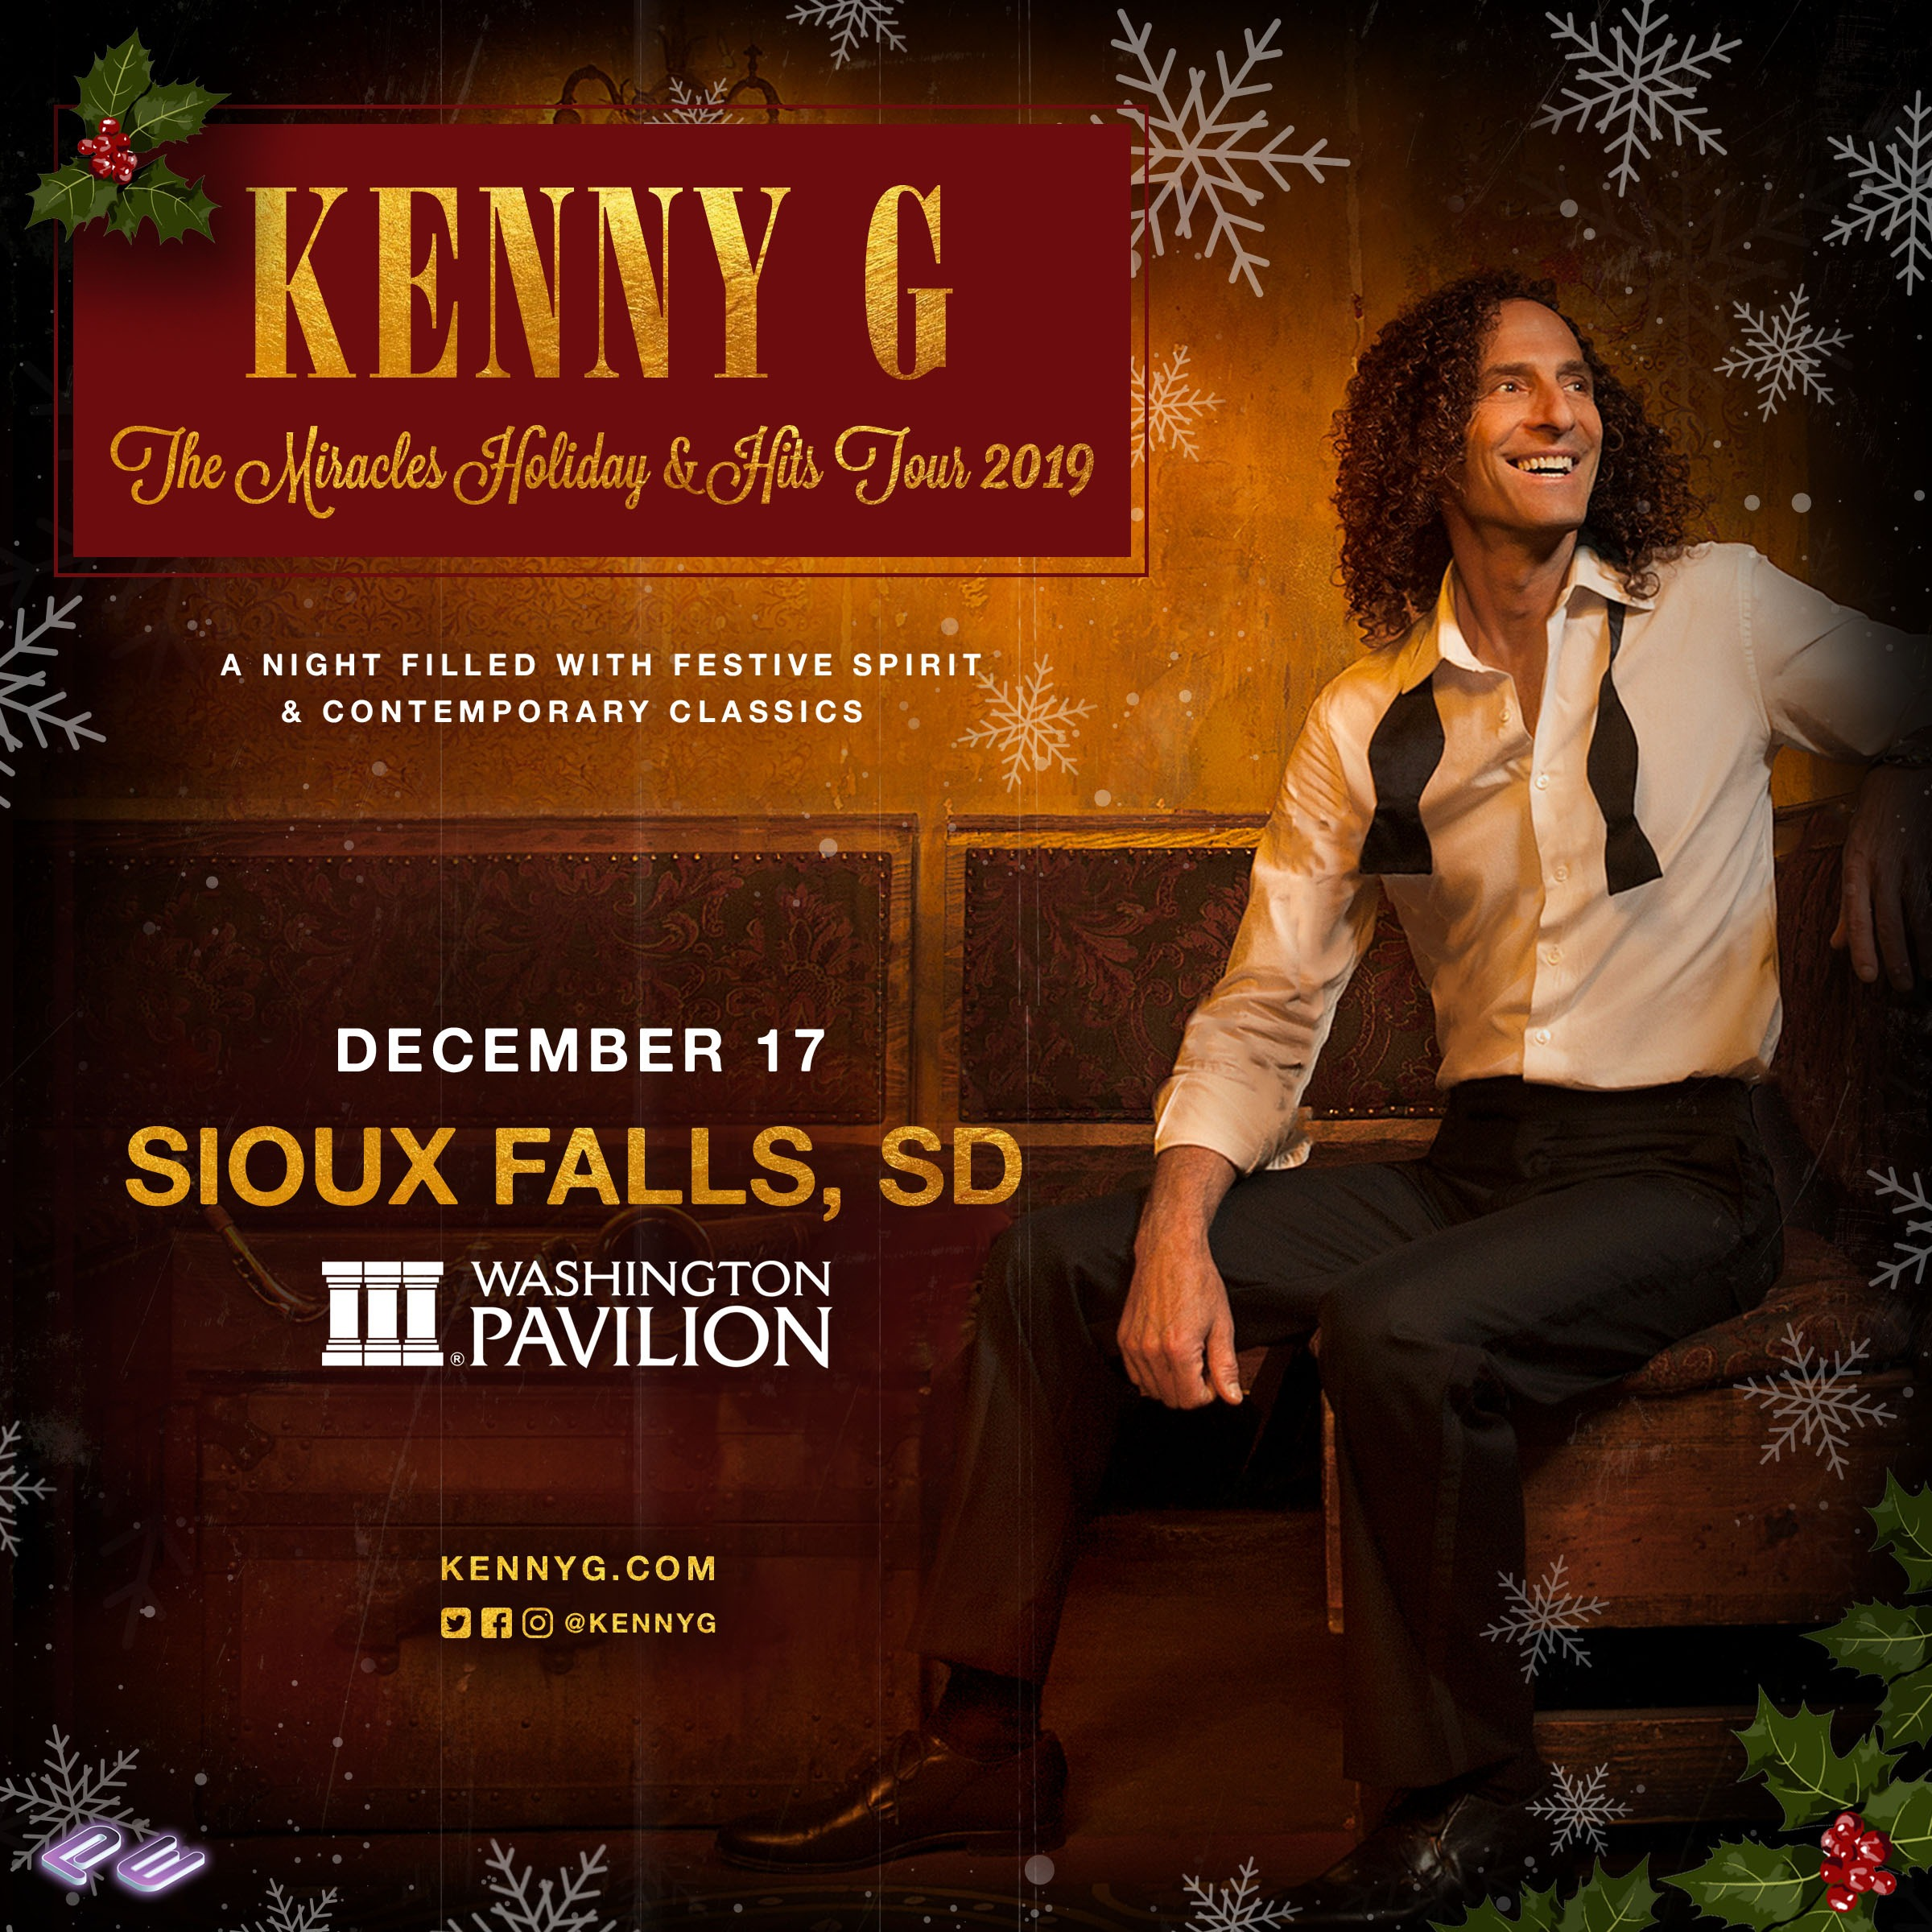 Kenny G Christmas.Kenny G At The Washington Pavilion This Christmas 101 9